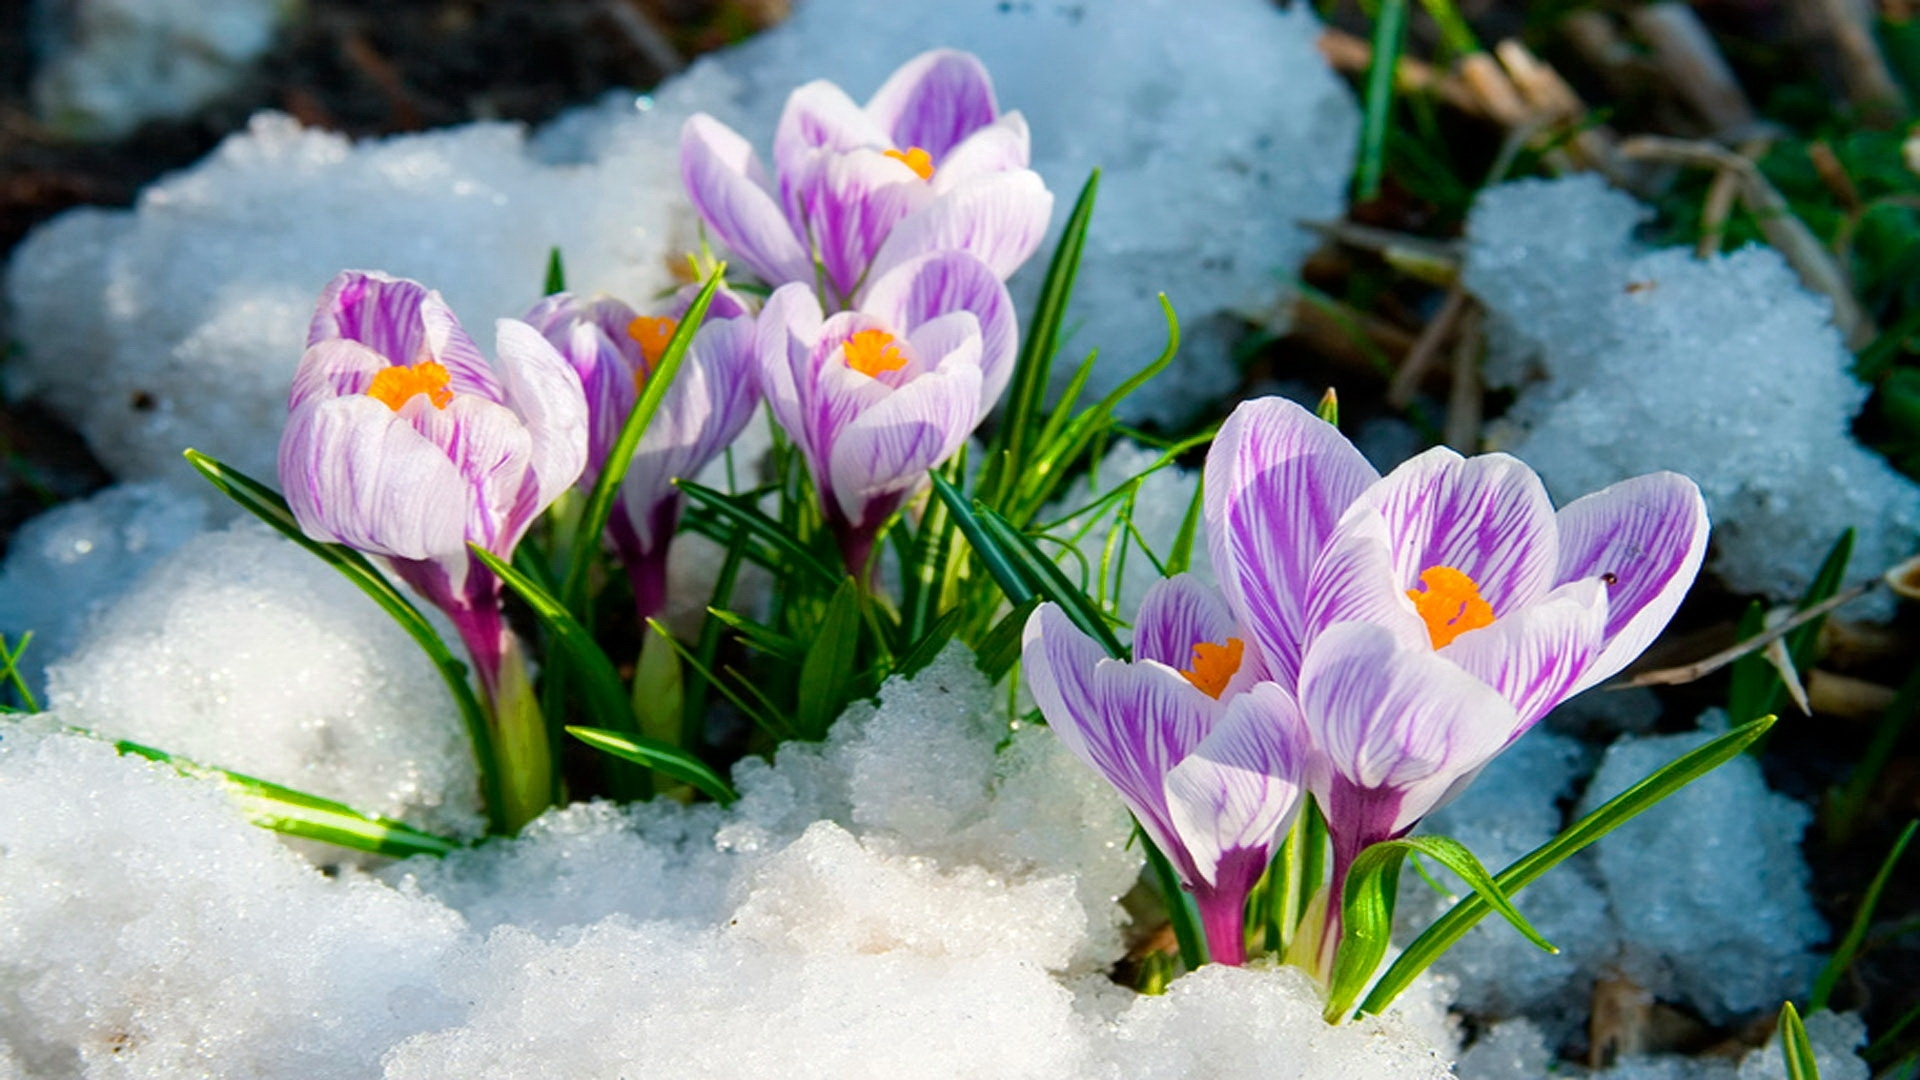 wallpaper.wiki-spring-flowers-hd-background-pic-wpb00465 - wallpaper